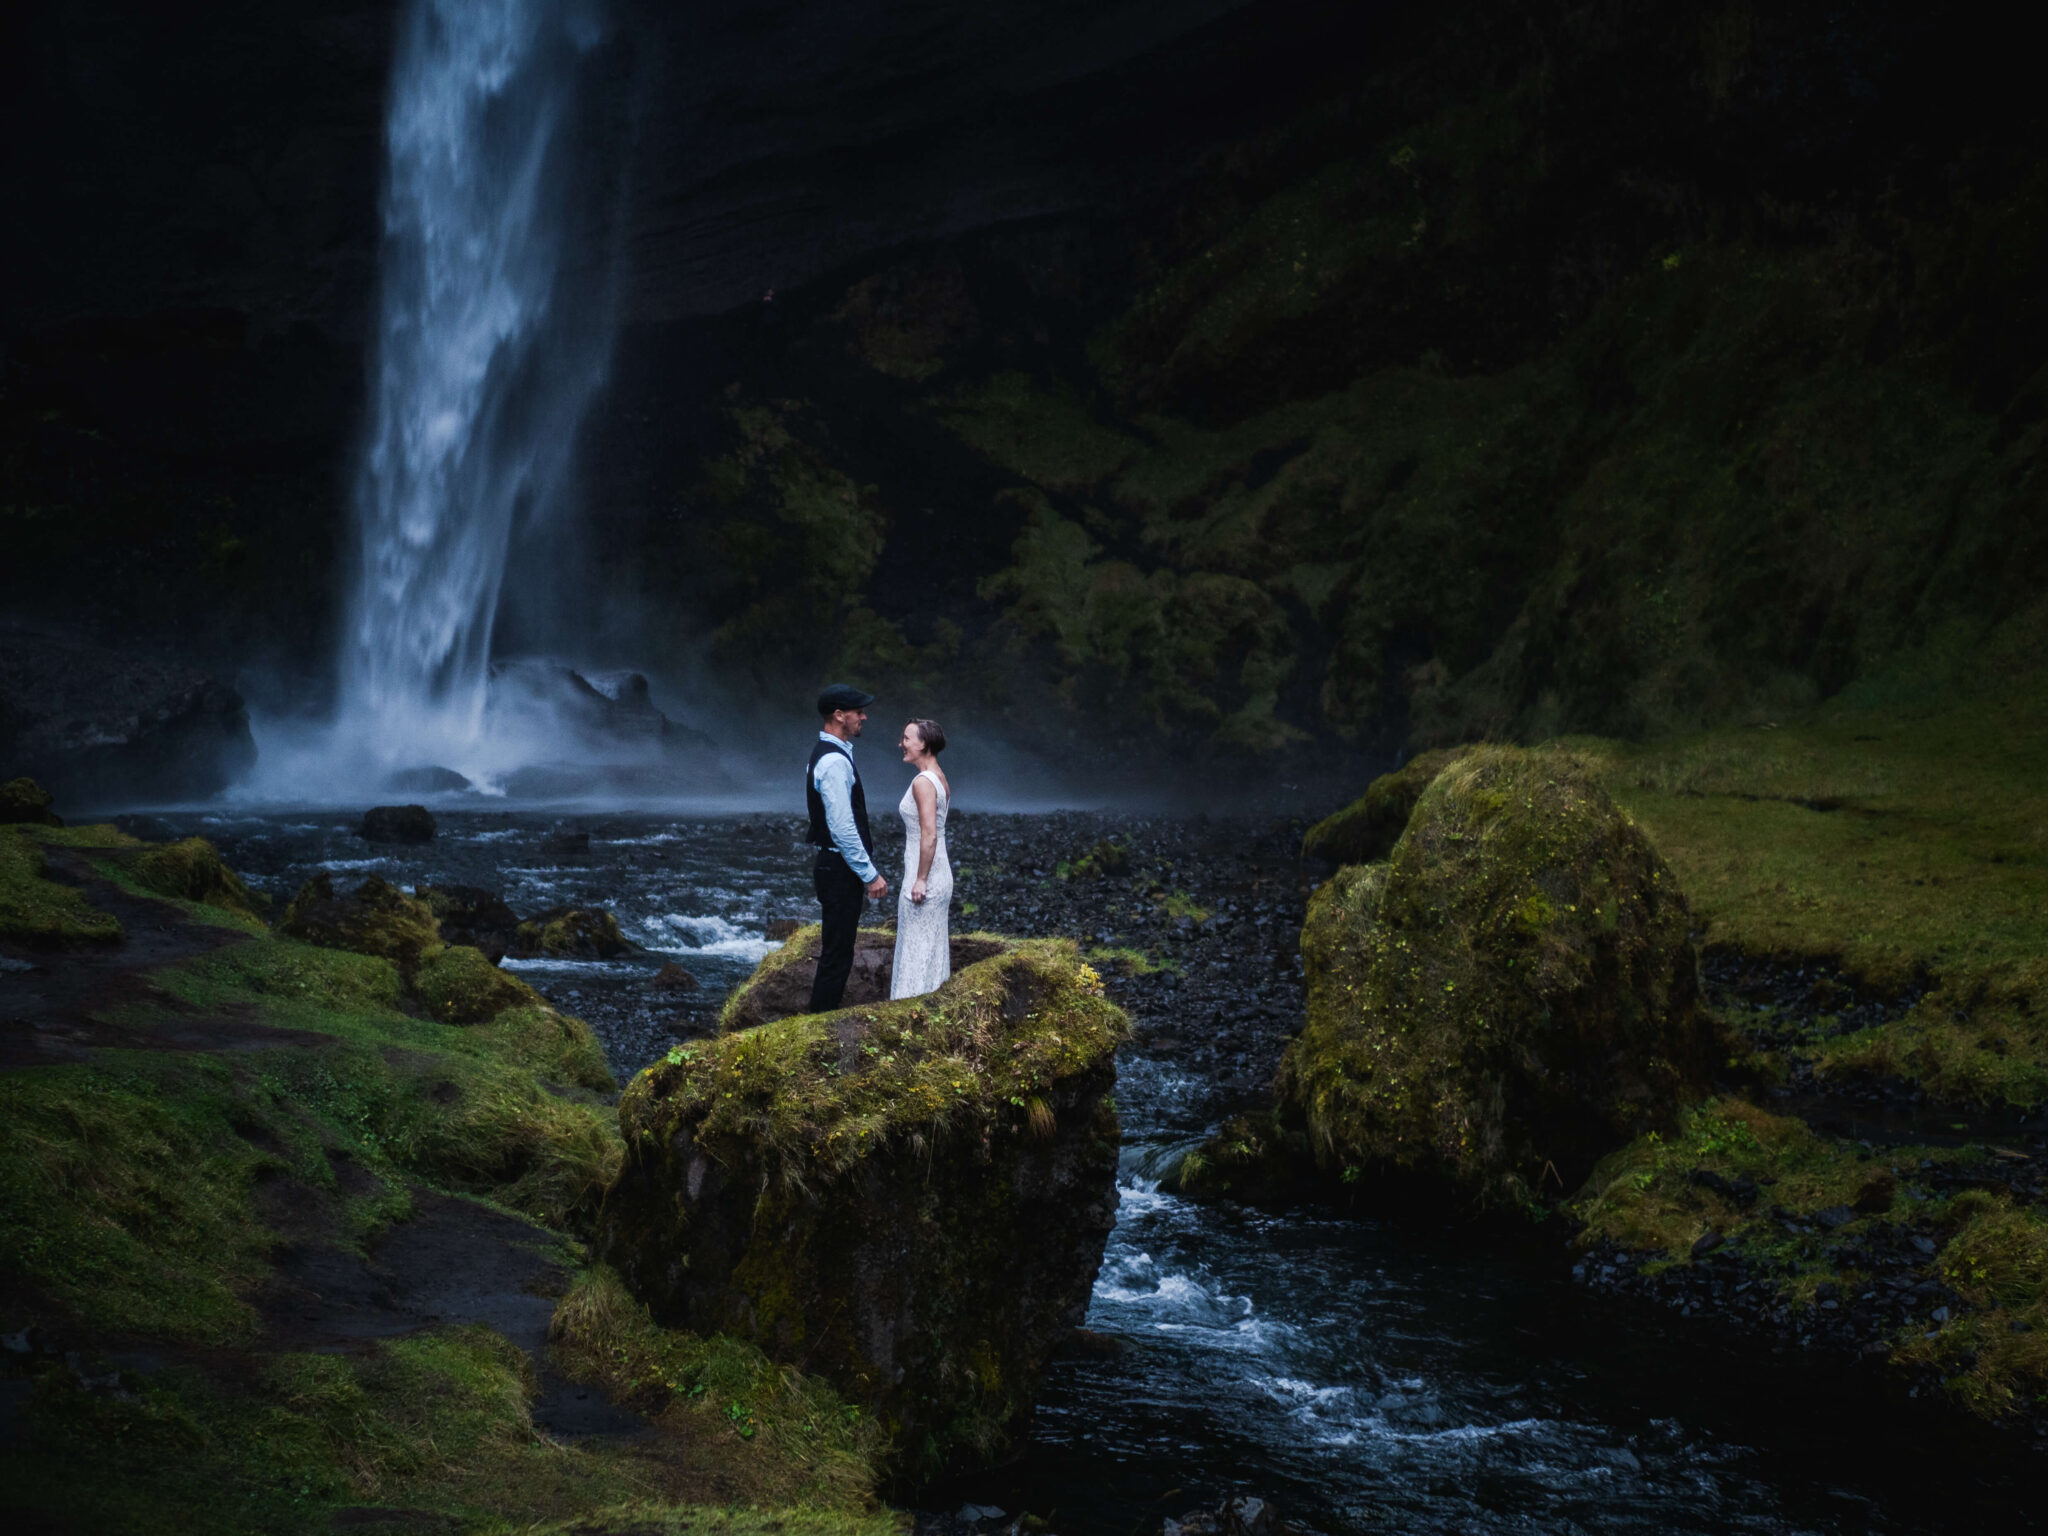 Newly weds standing in front of waterfall in Iceland